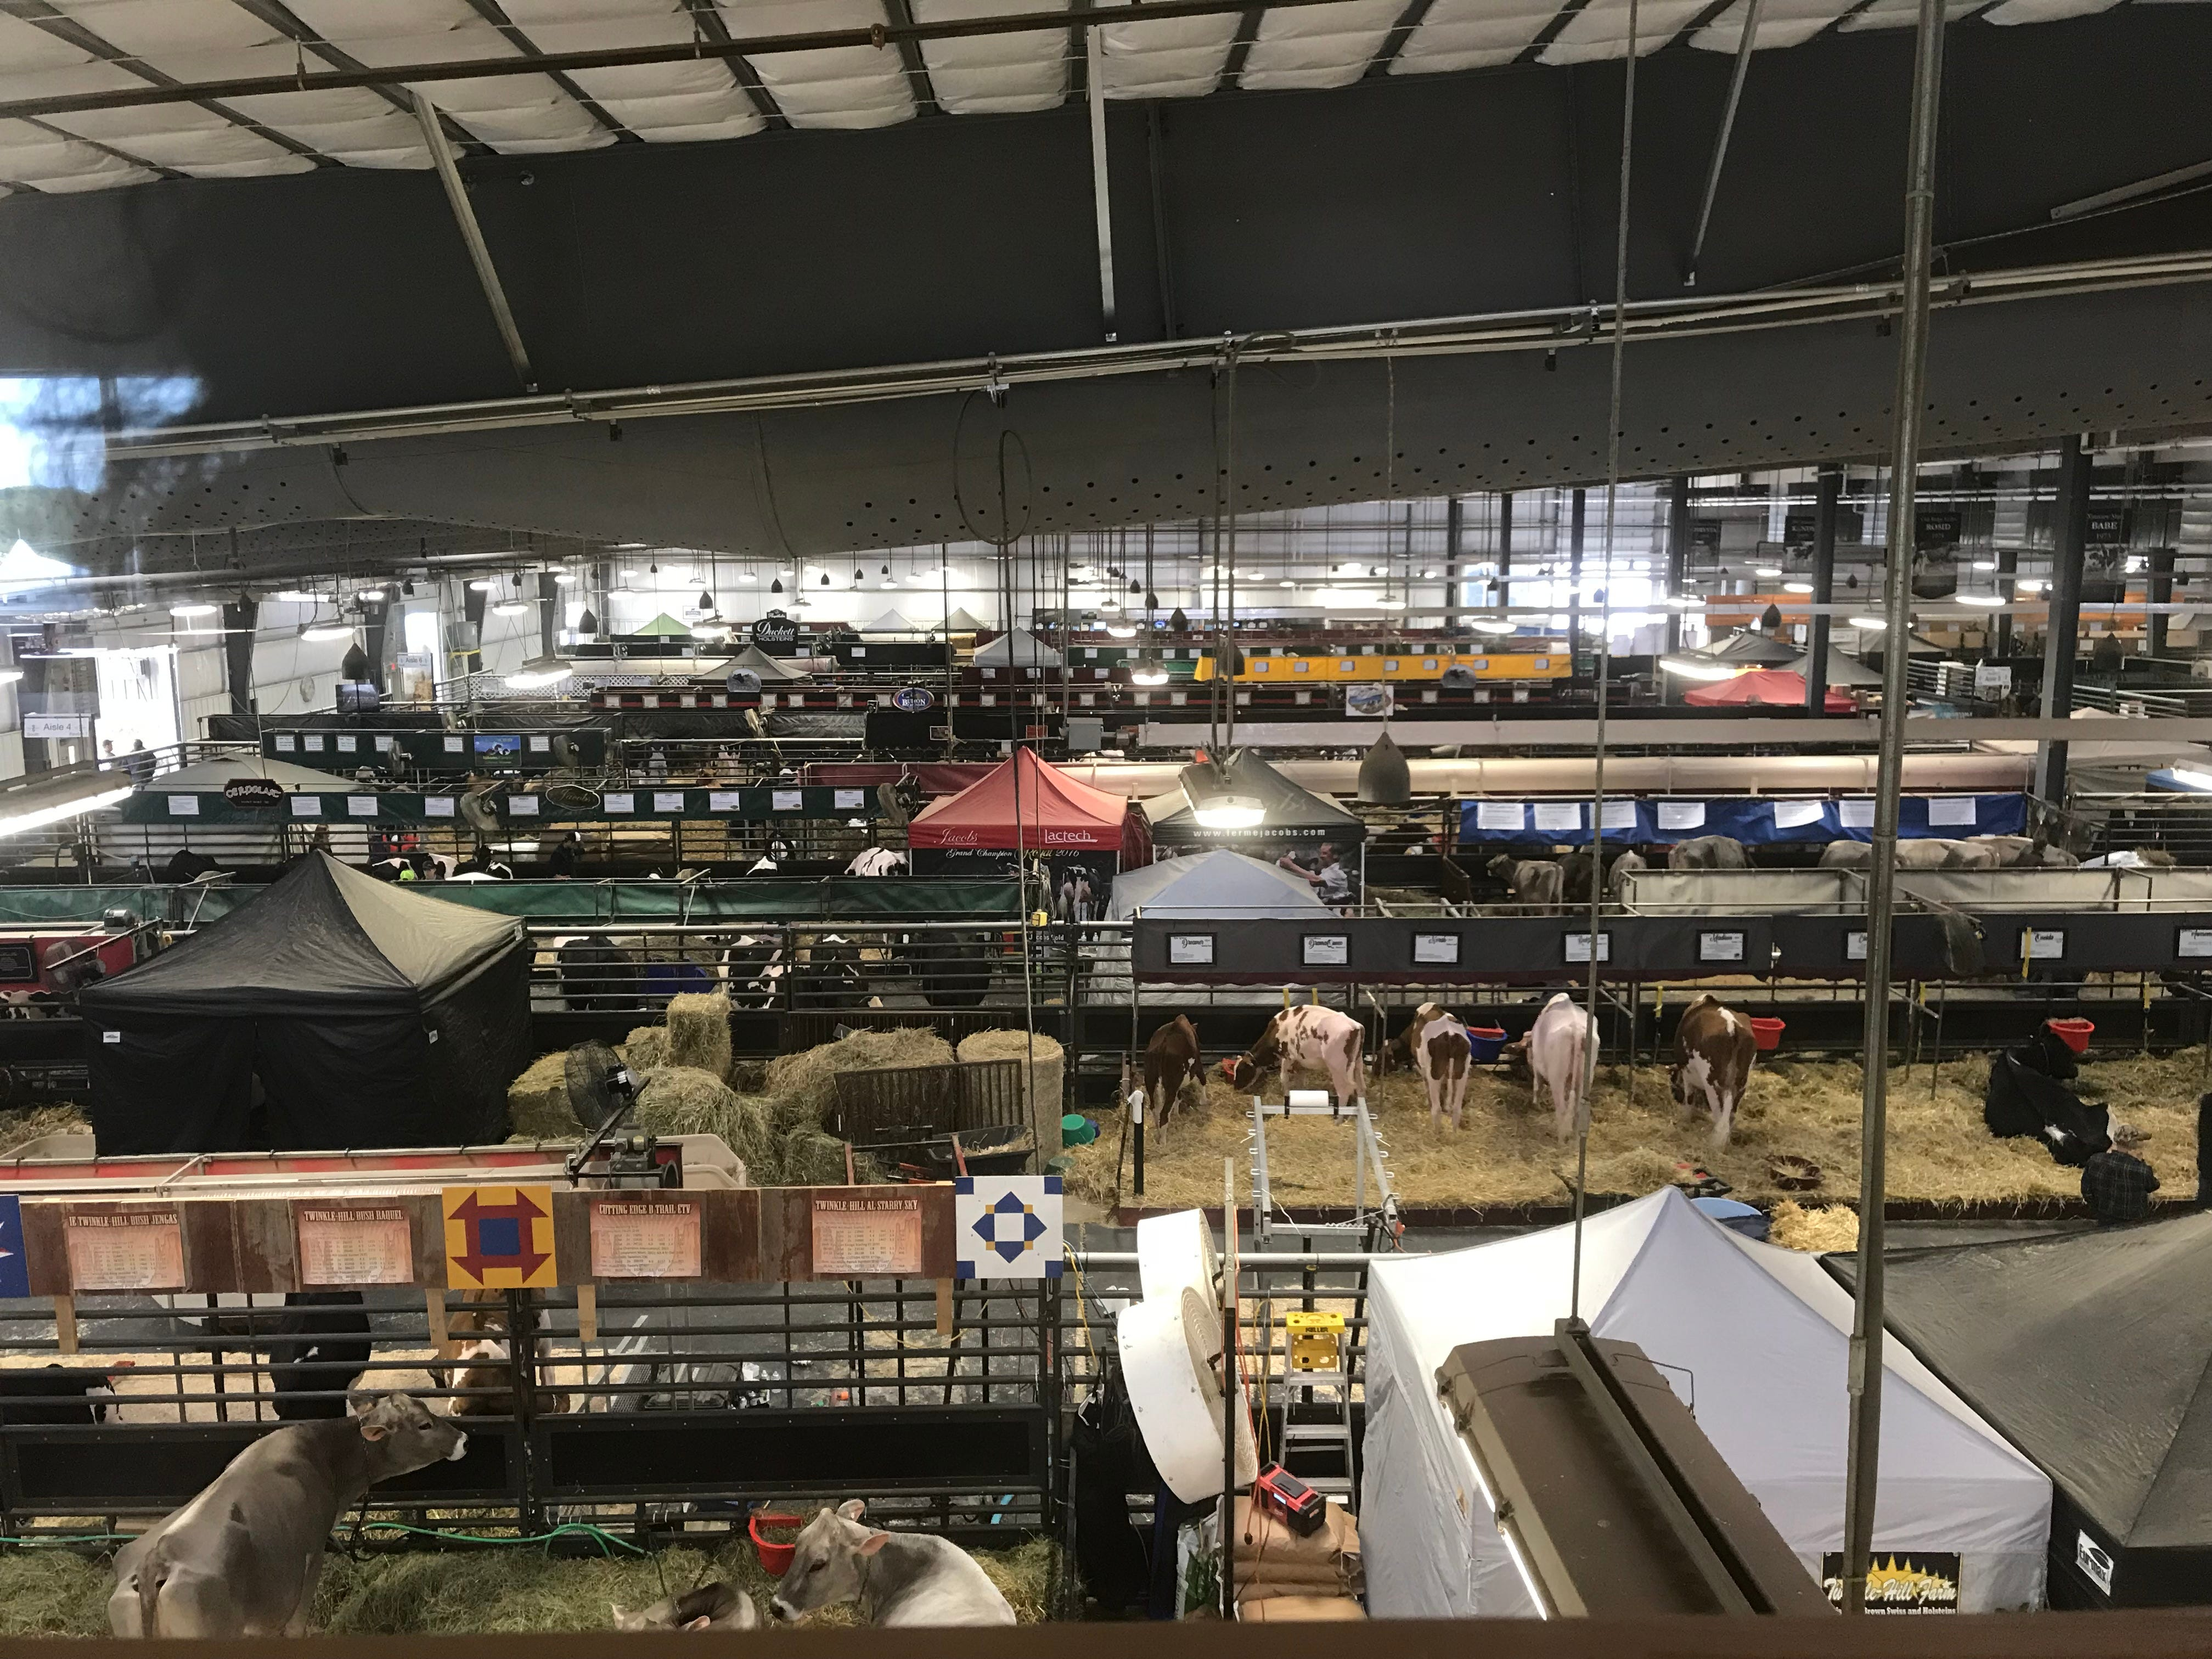 A birds-eye view of the cattle displays inside the New Holland Pavilion.